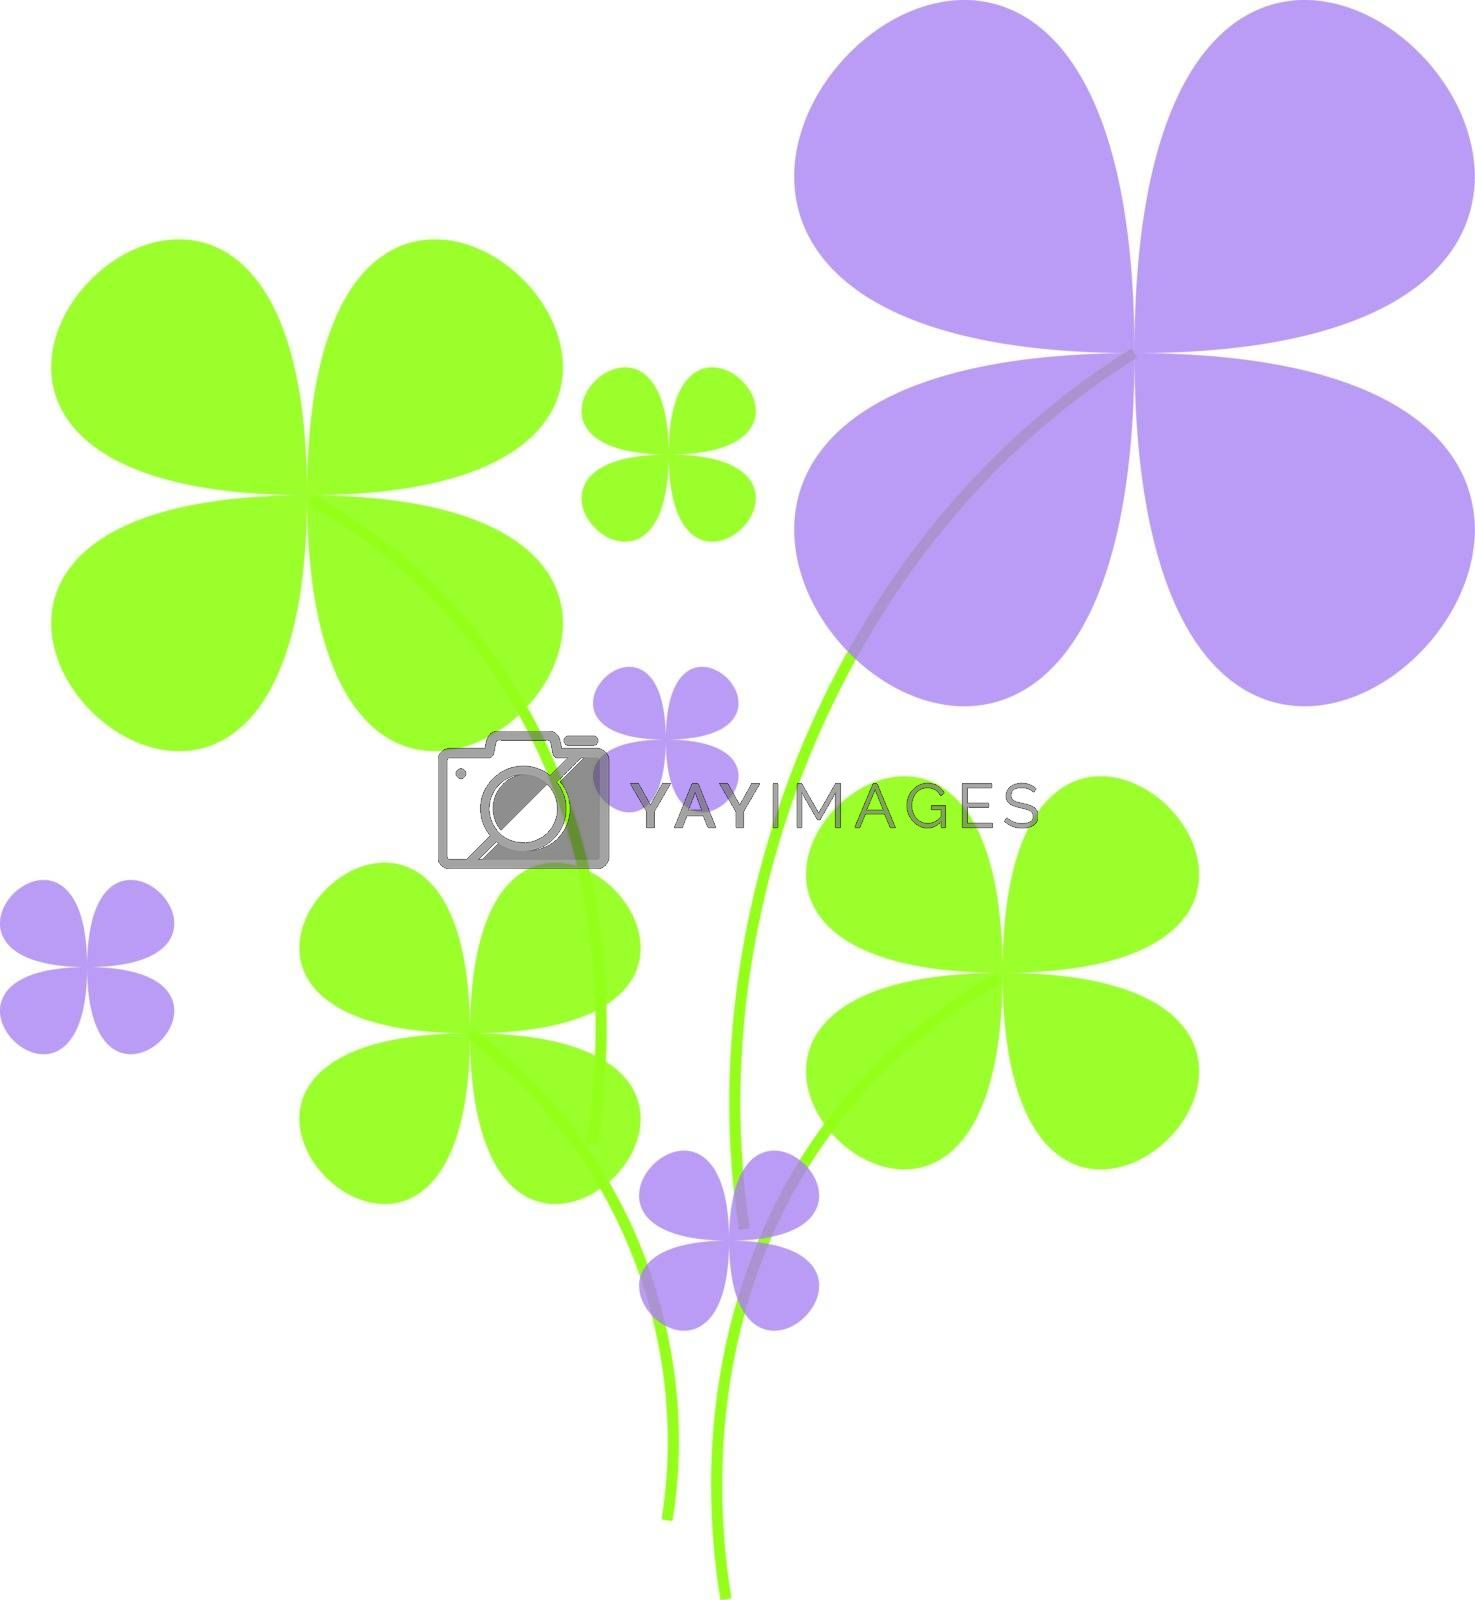 Lucky green and lilac clovers on white background